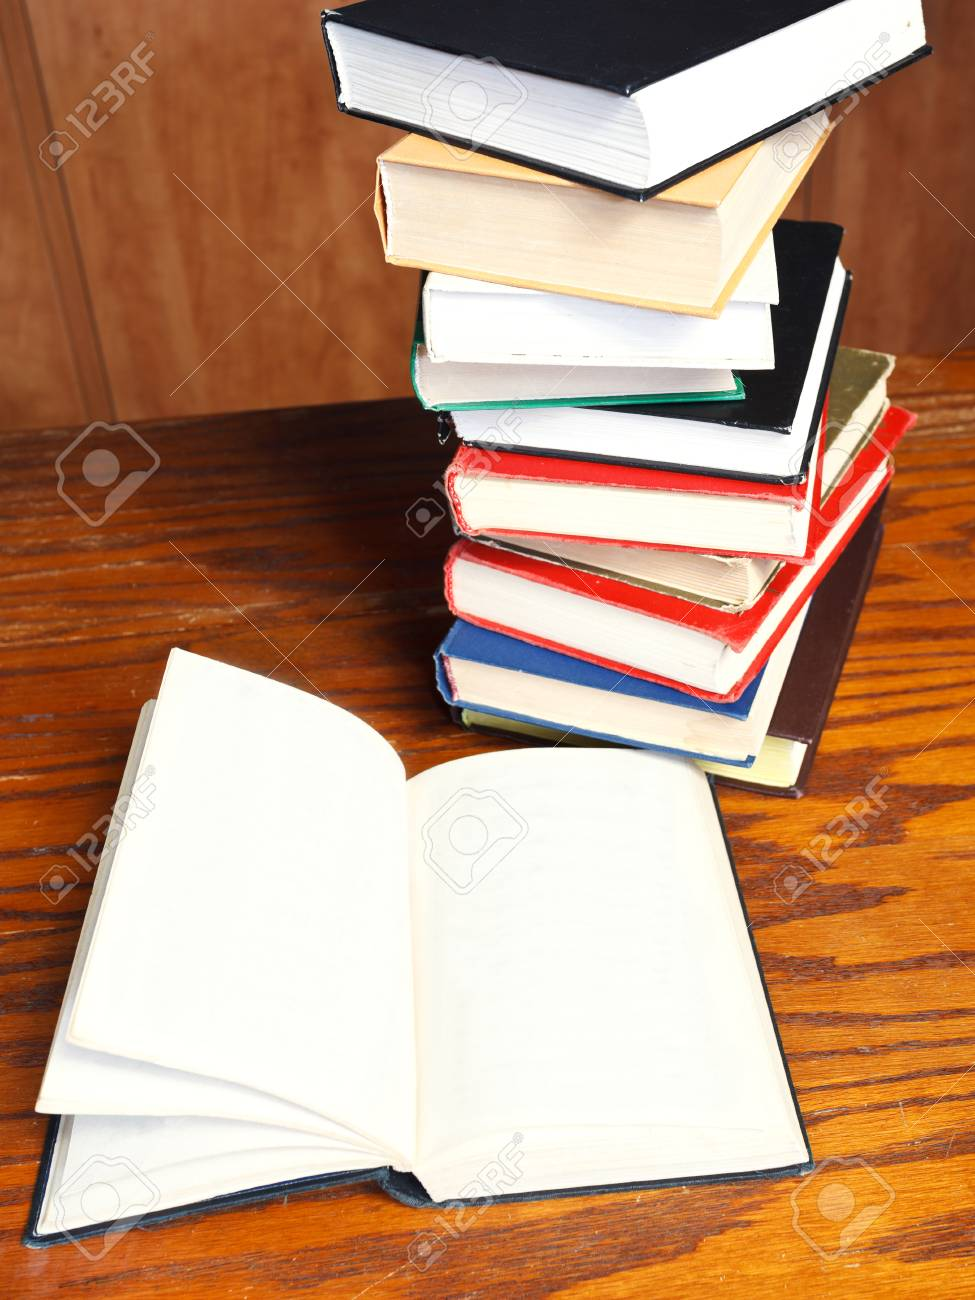 top view of blank open book on wooden table near bookcases Stock Photo - 24613901